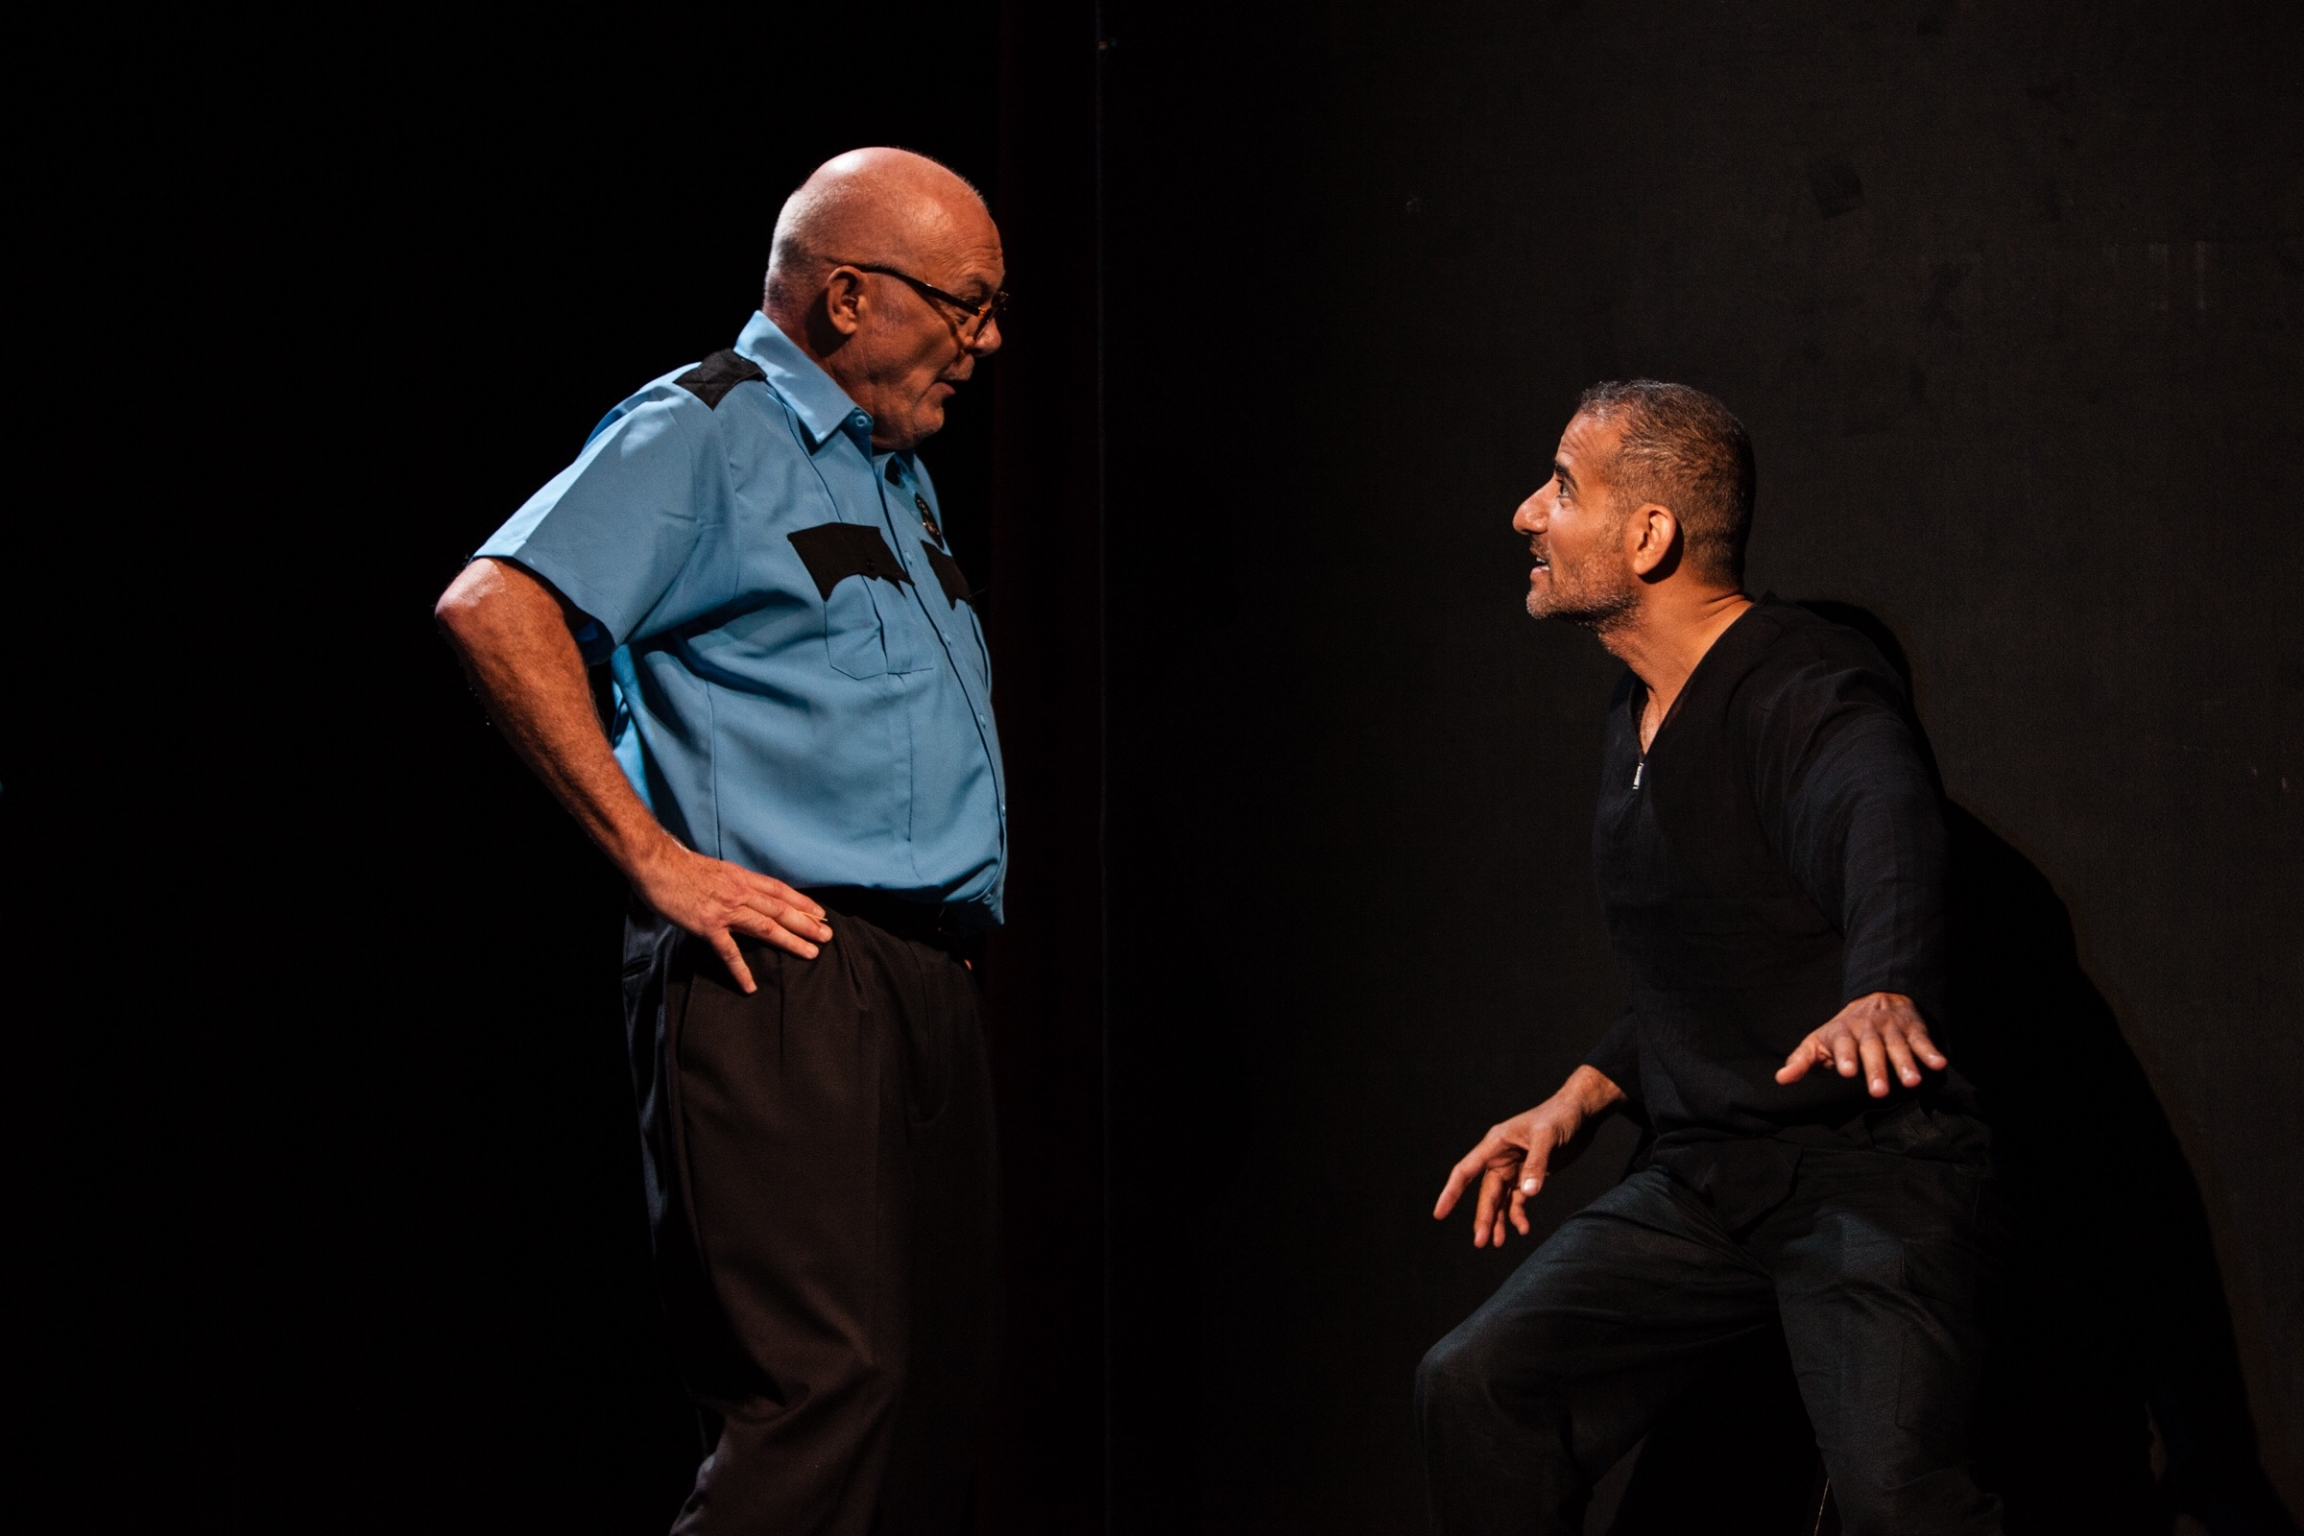 "Actors Paul Costello, left, and Nabil Awad perform in a play ""Counter Offence,"" that tackles police brutality and was staged at the Bay Area Drama Company. The theater's co-artistic director Basab Pradhan said the play was not well-attended."